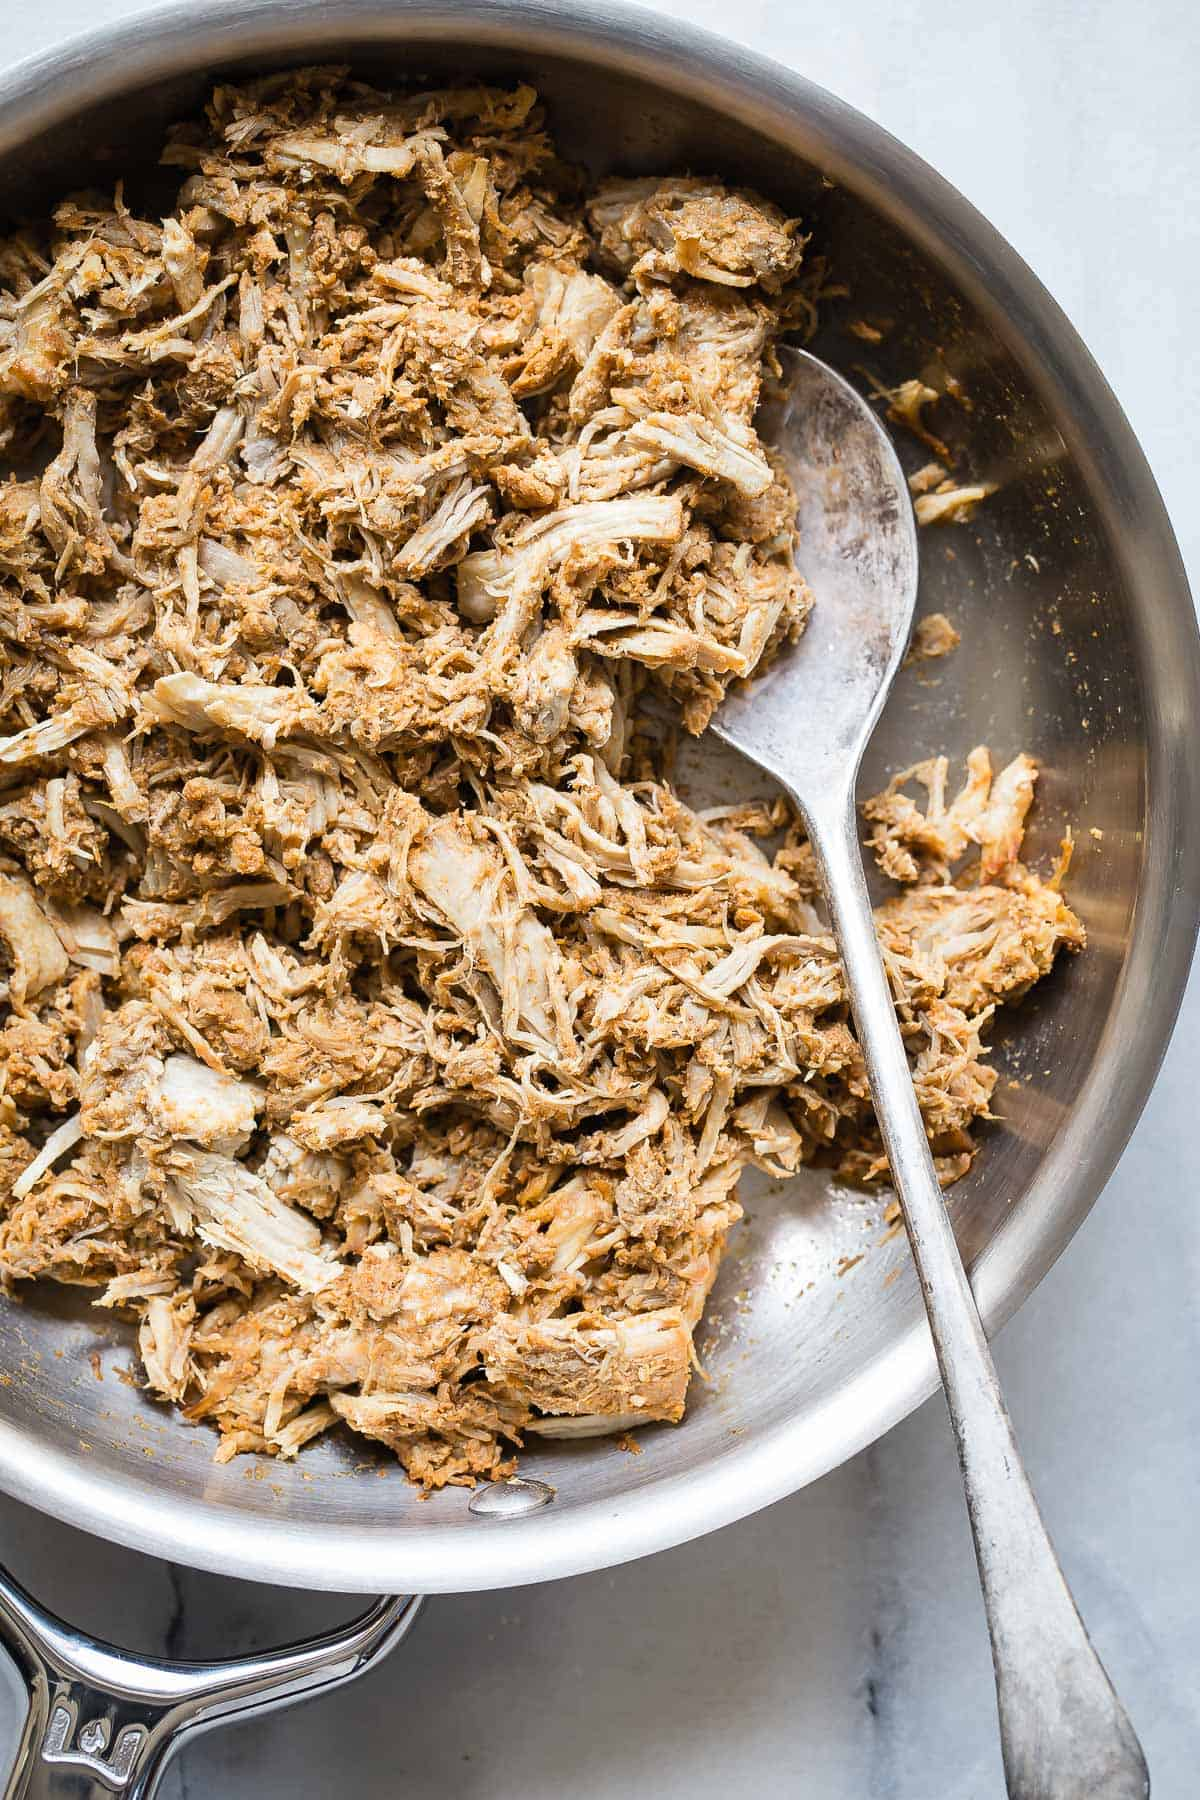 Shredded Pork in a pan with spoon